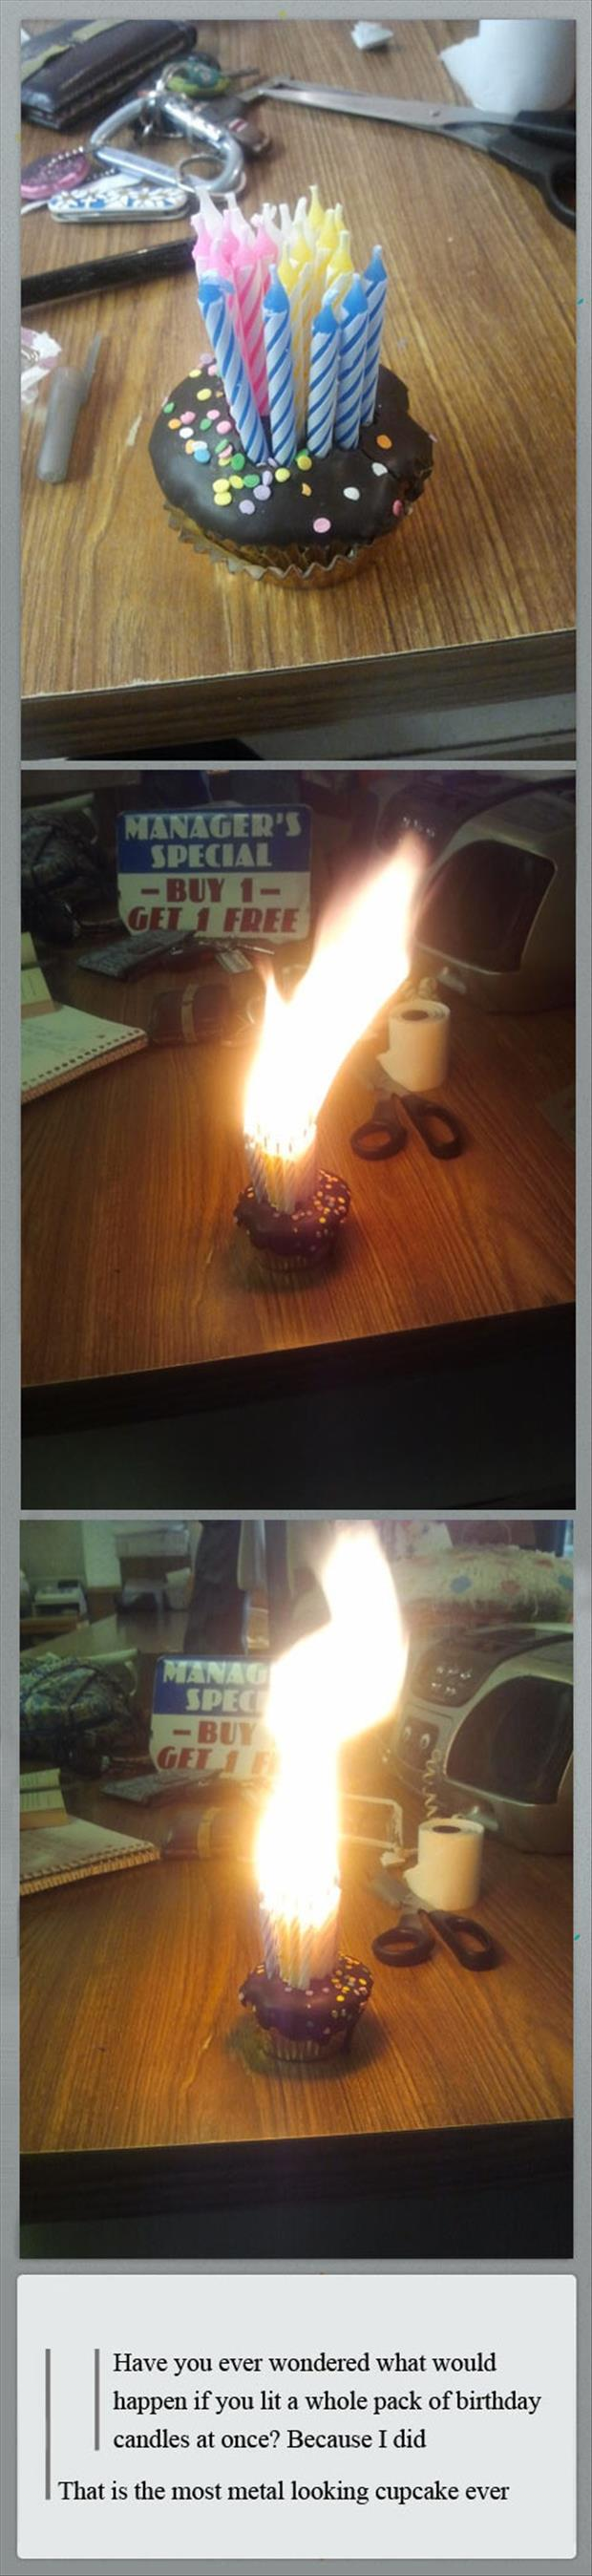 funny birthday candles